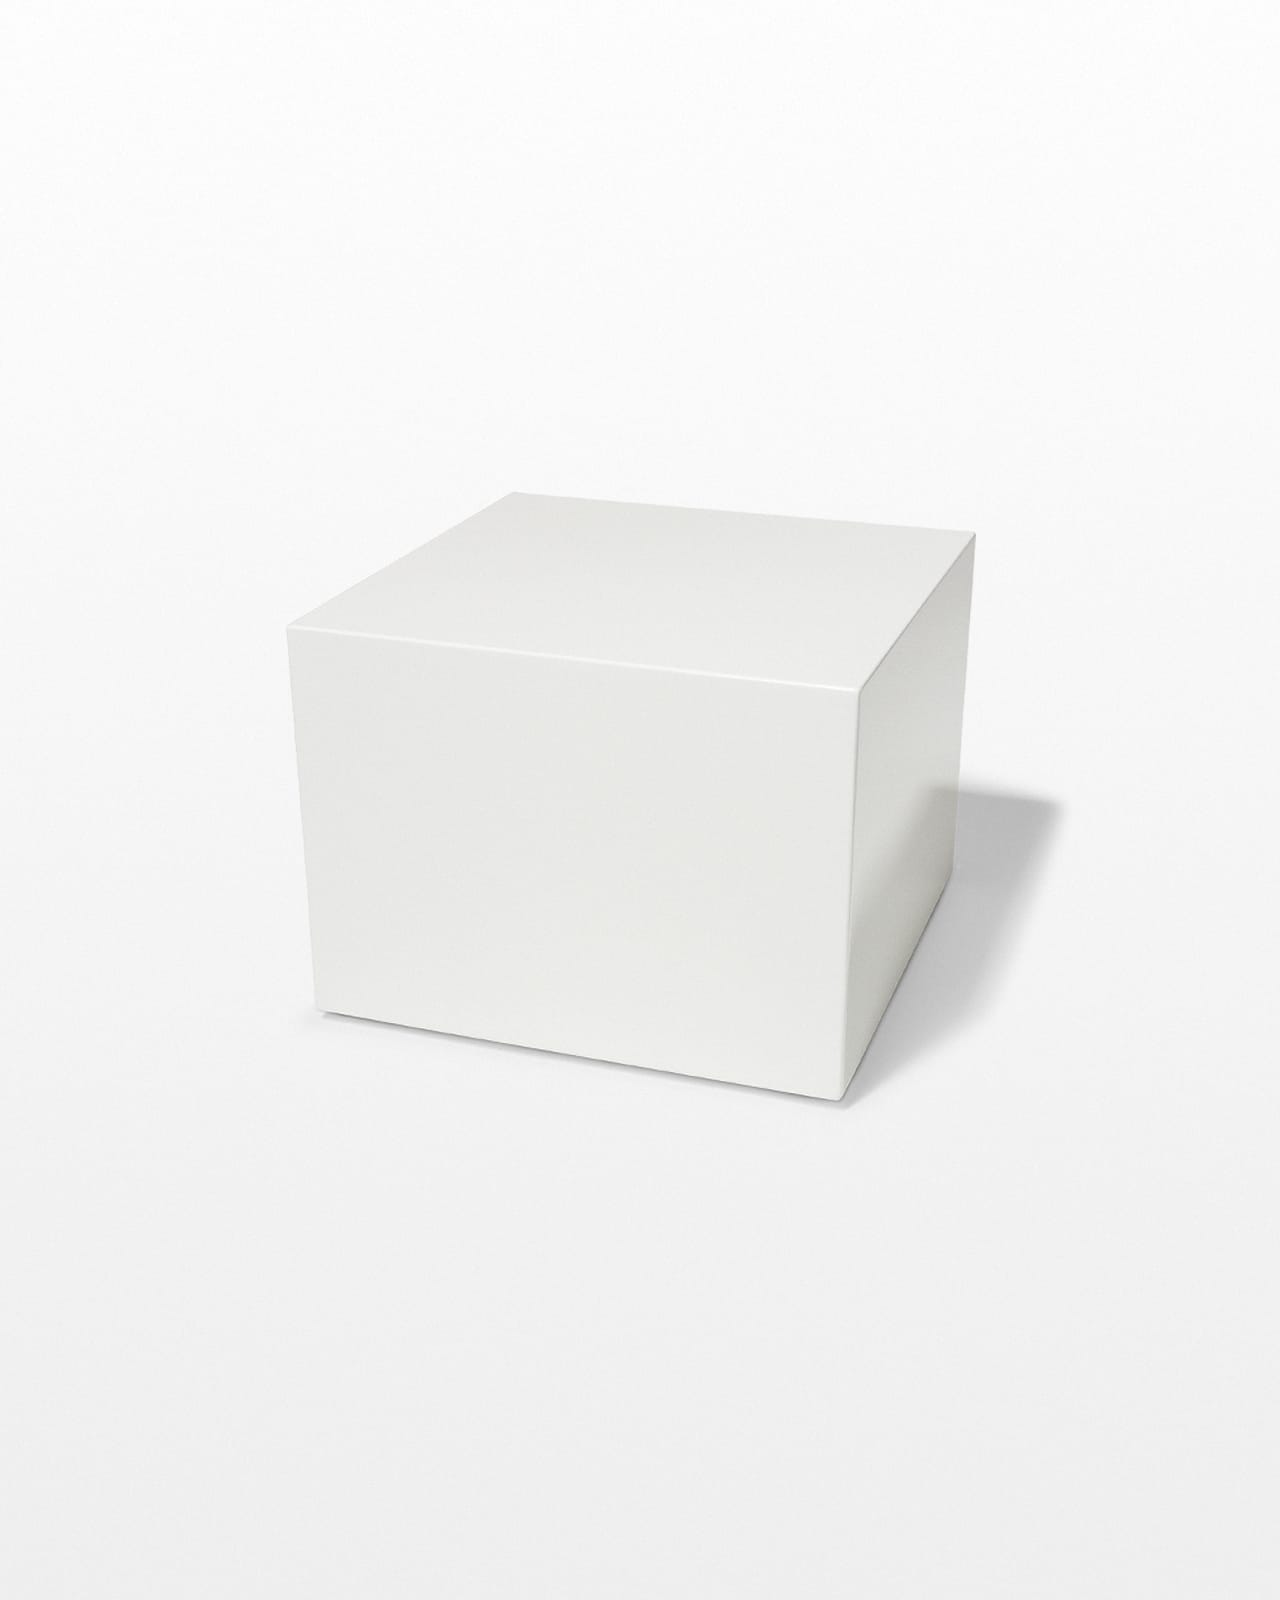 Tb117 Benny White Lacquer Cube Table